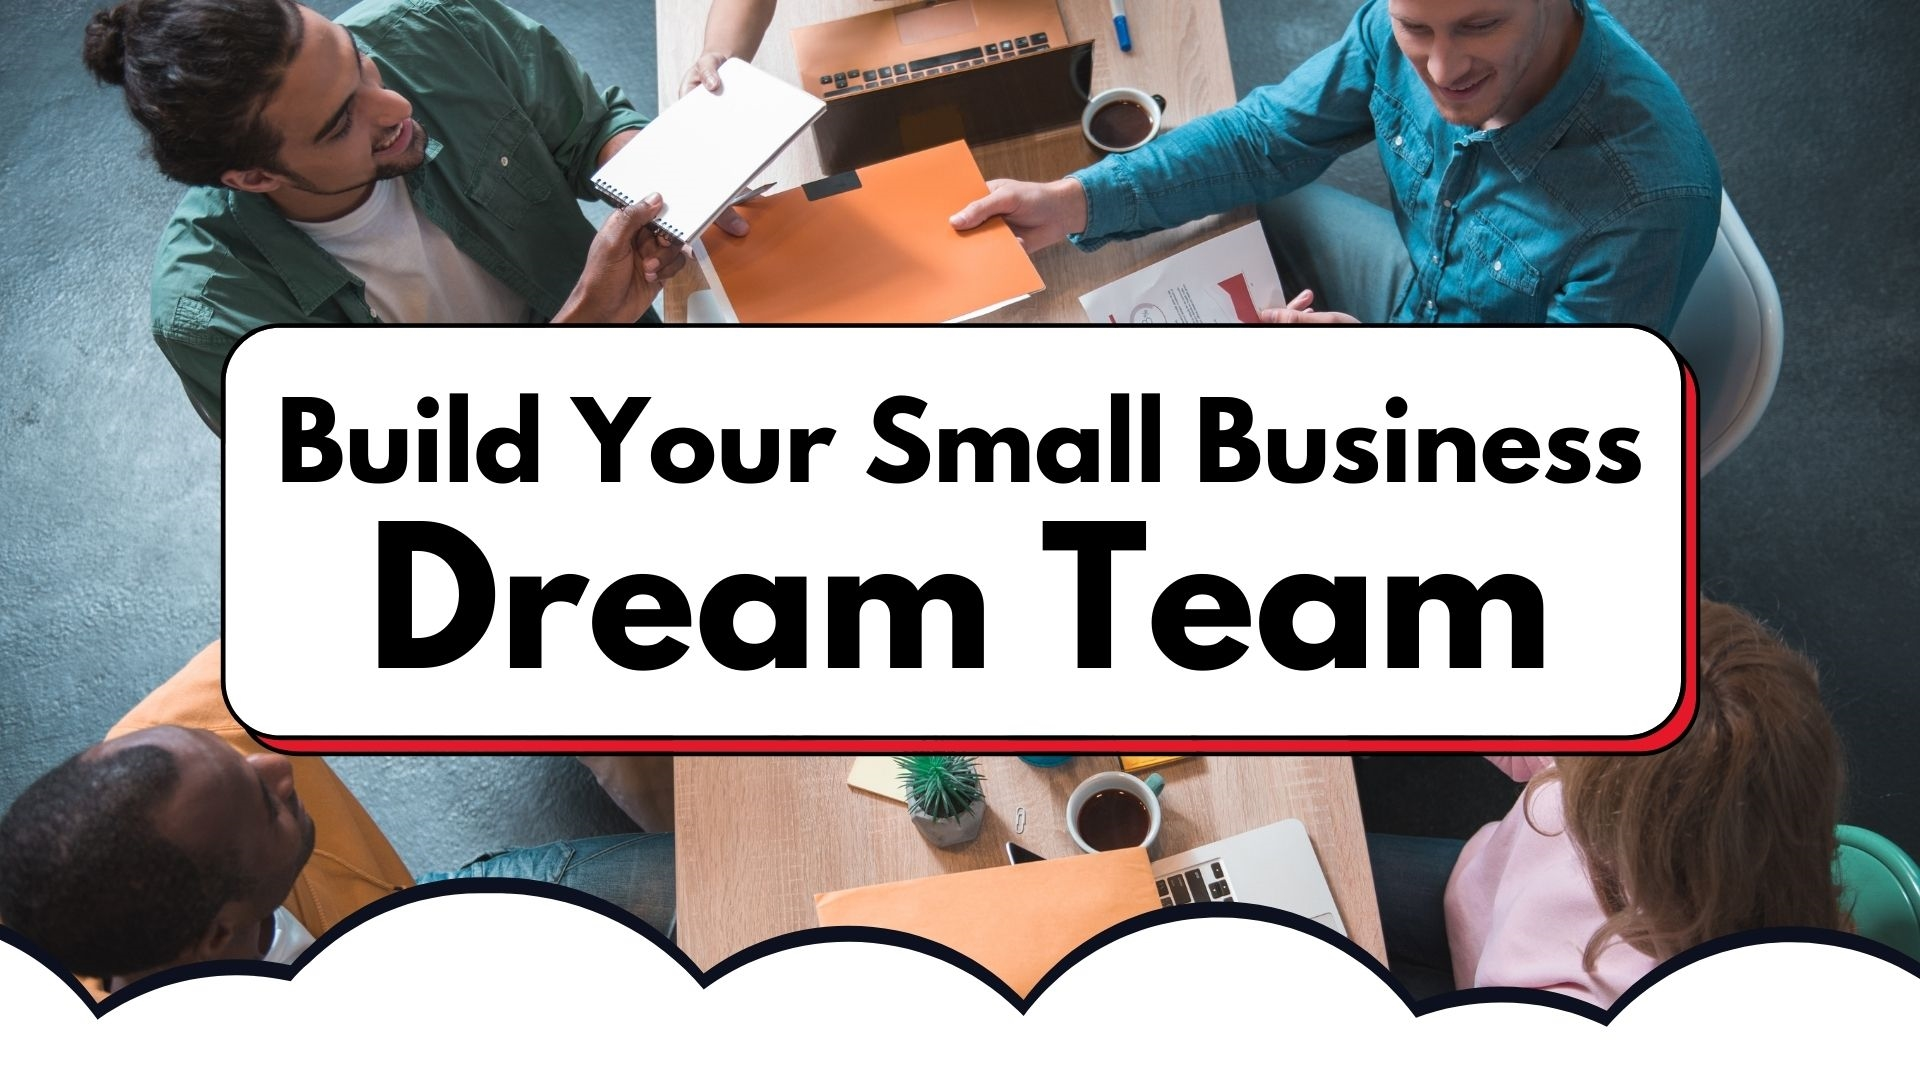 Build Your Small Business Dream Team